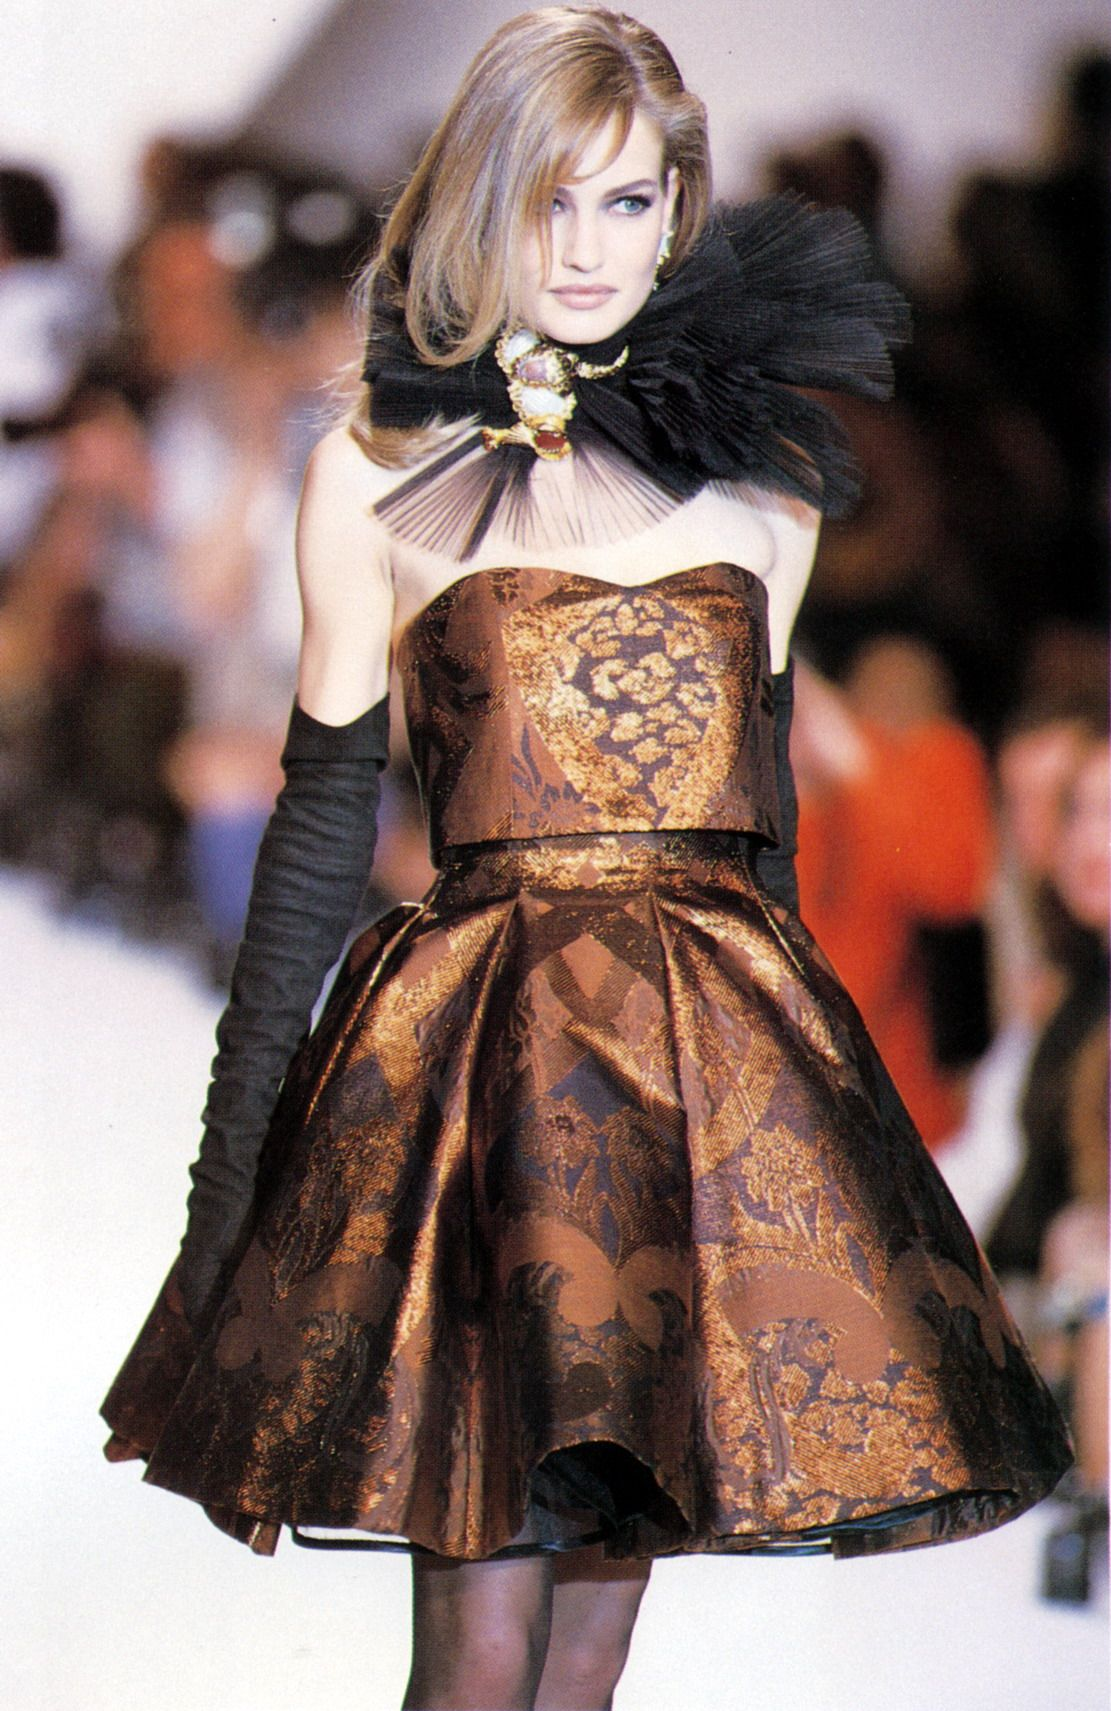 Discussion on this topic: Joyce Bryant, karen-dior/